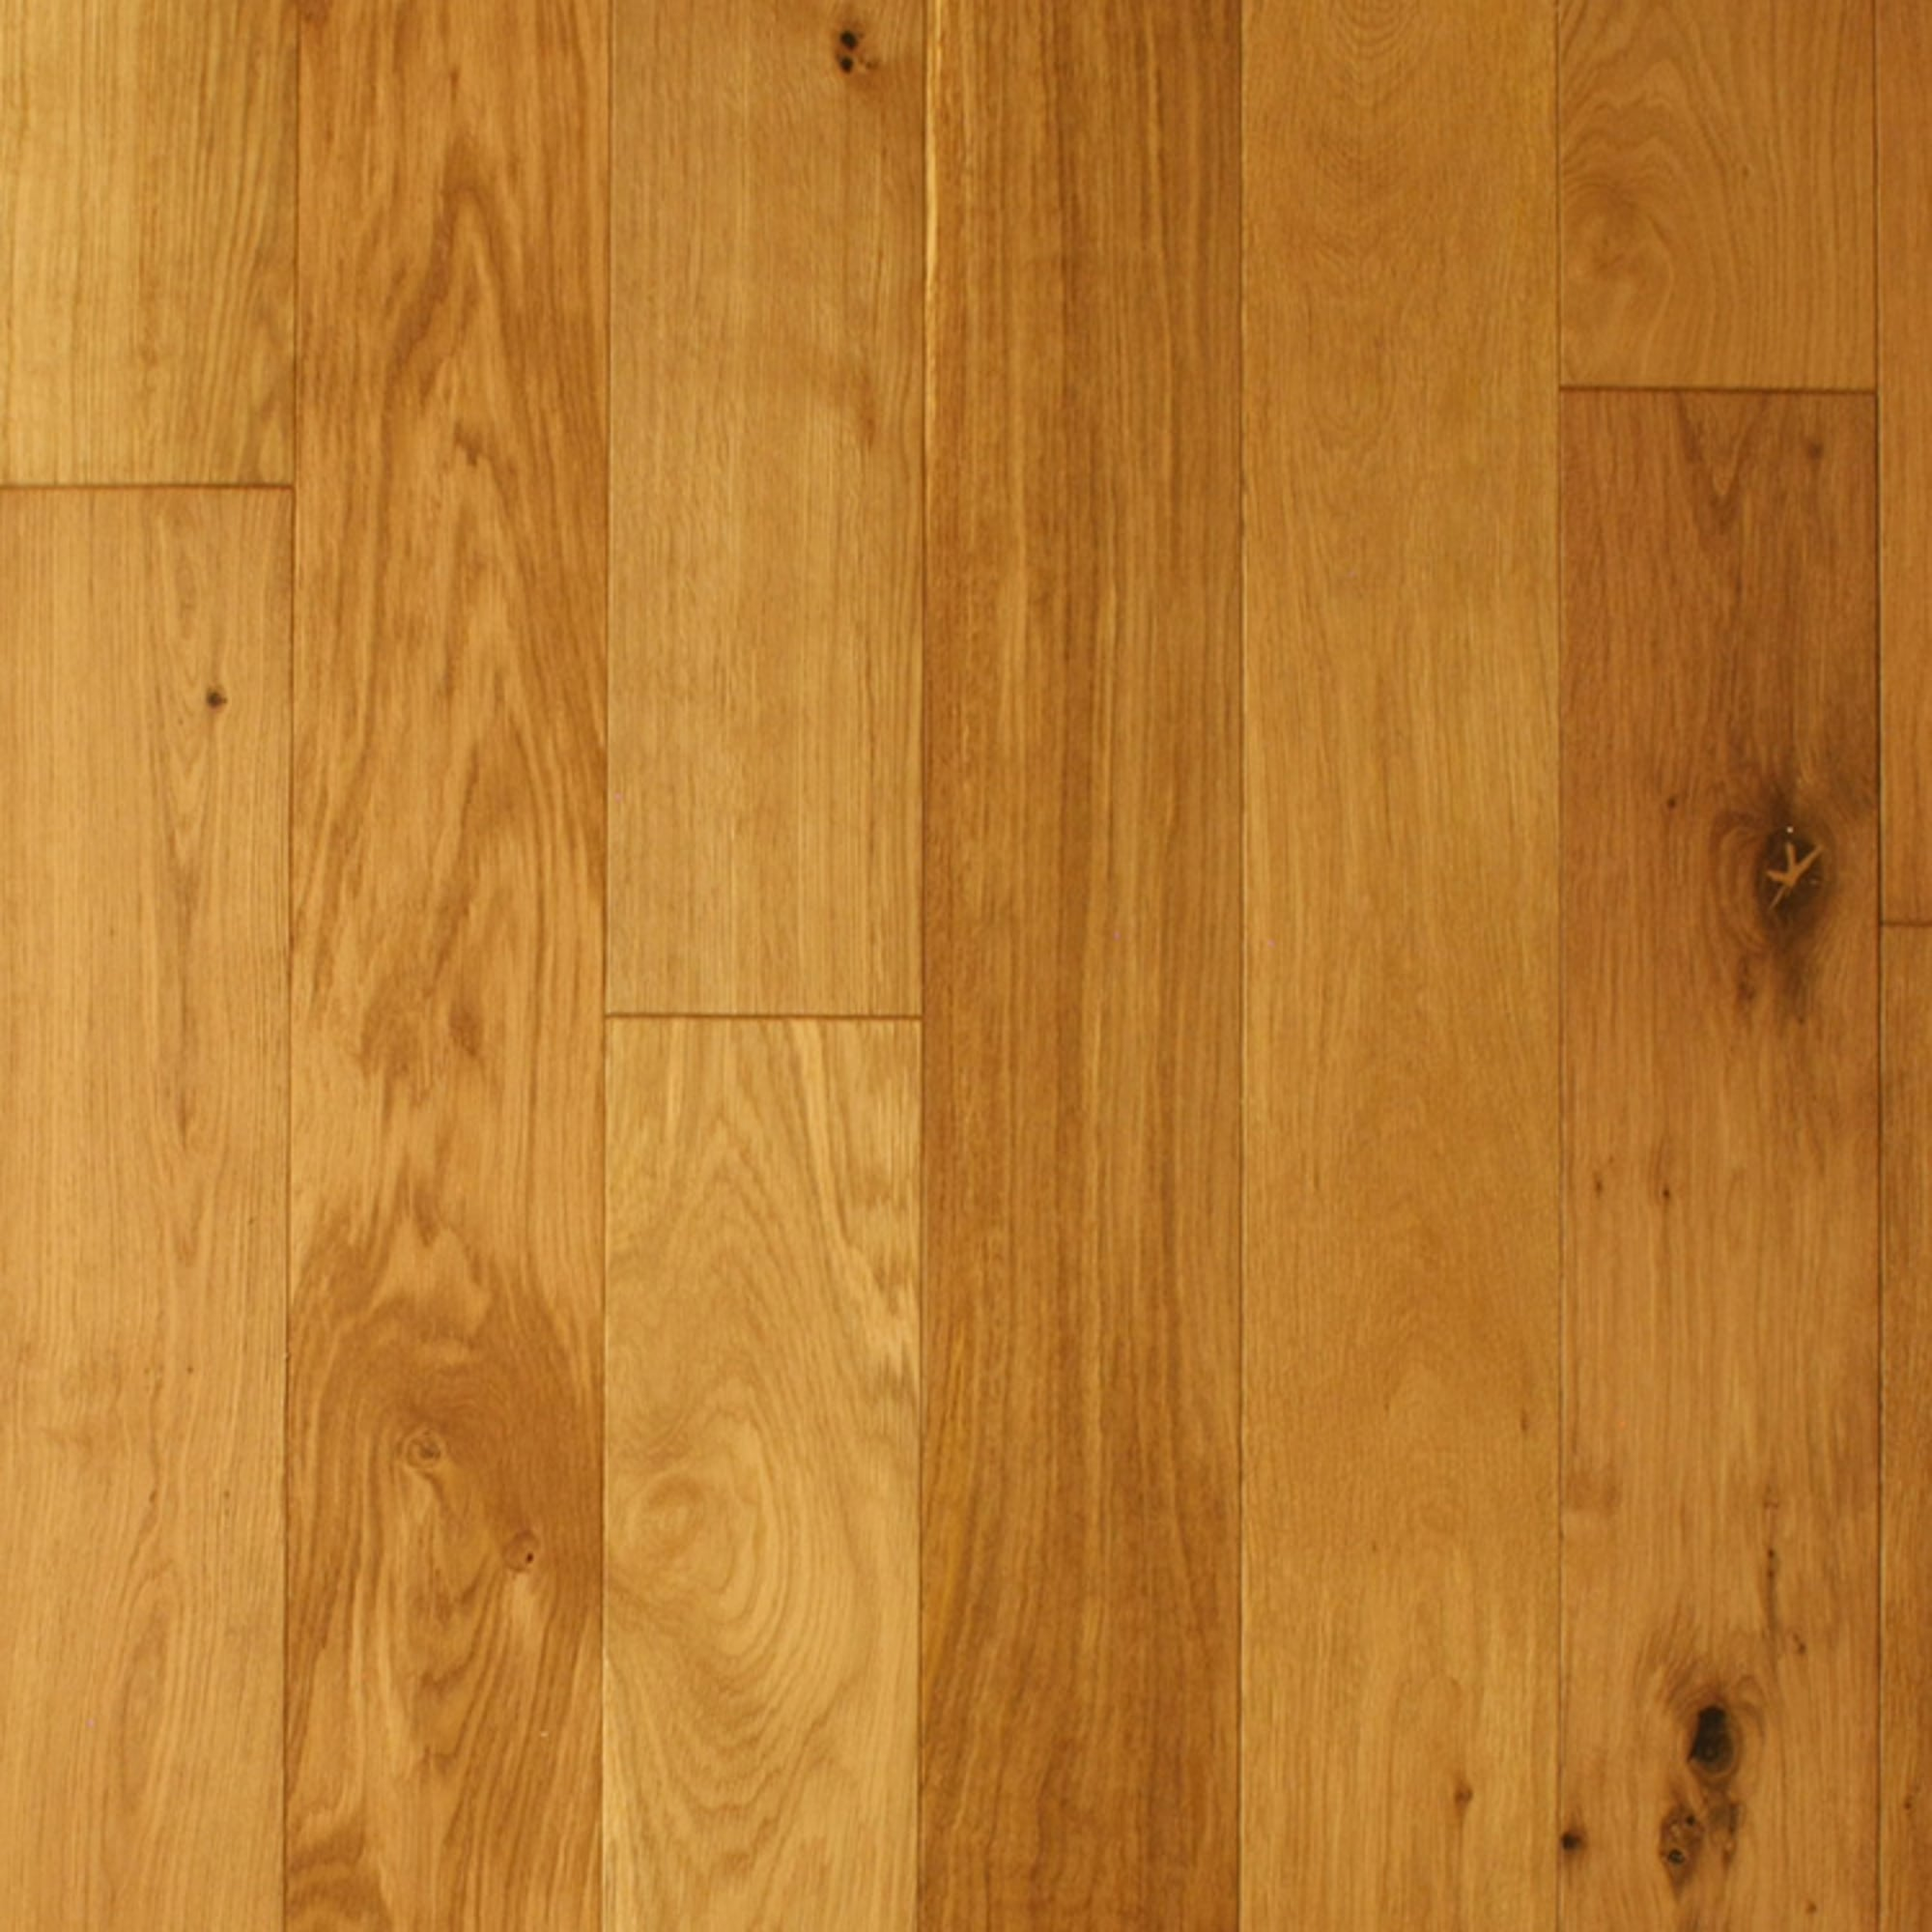 Wood flooring multi layer 18x150mm brushed oiled for Engineered woods